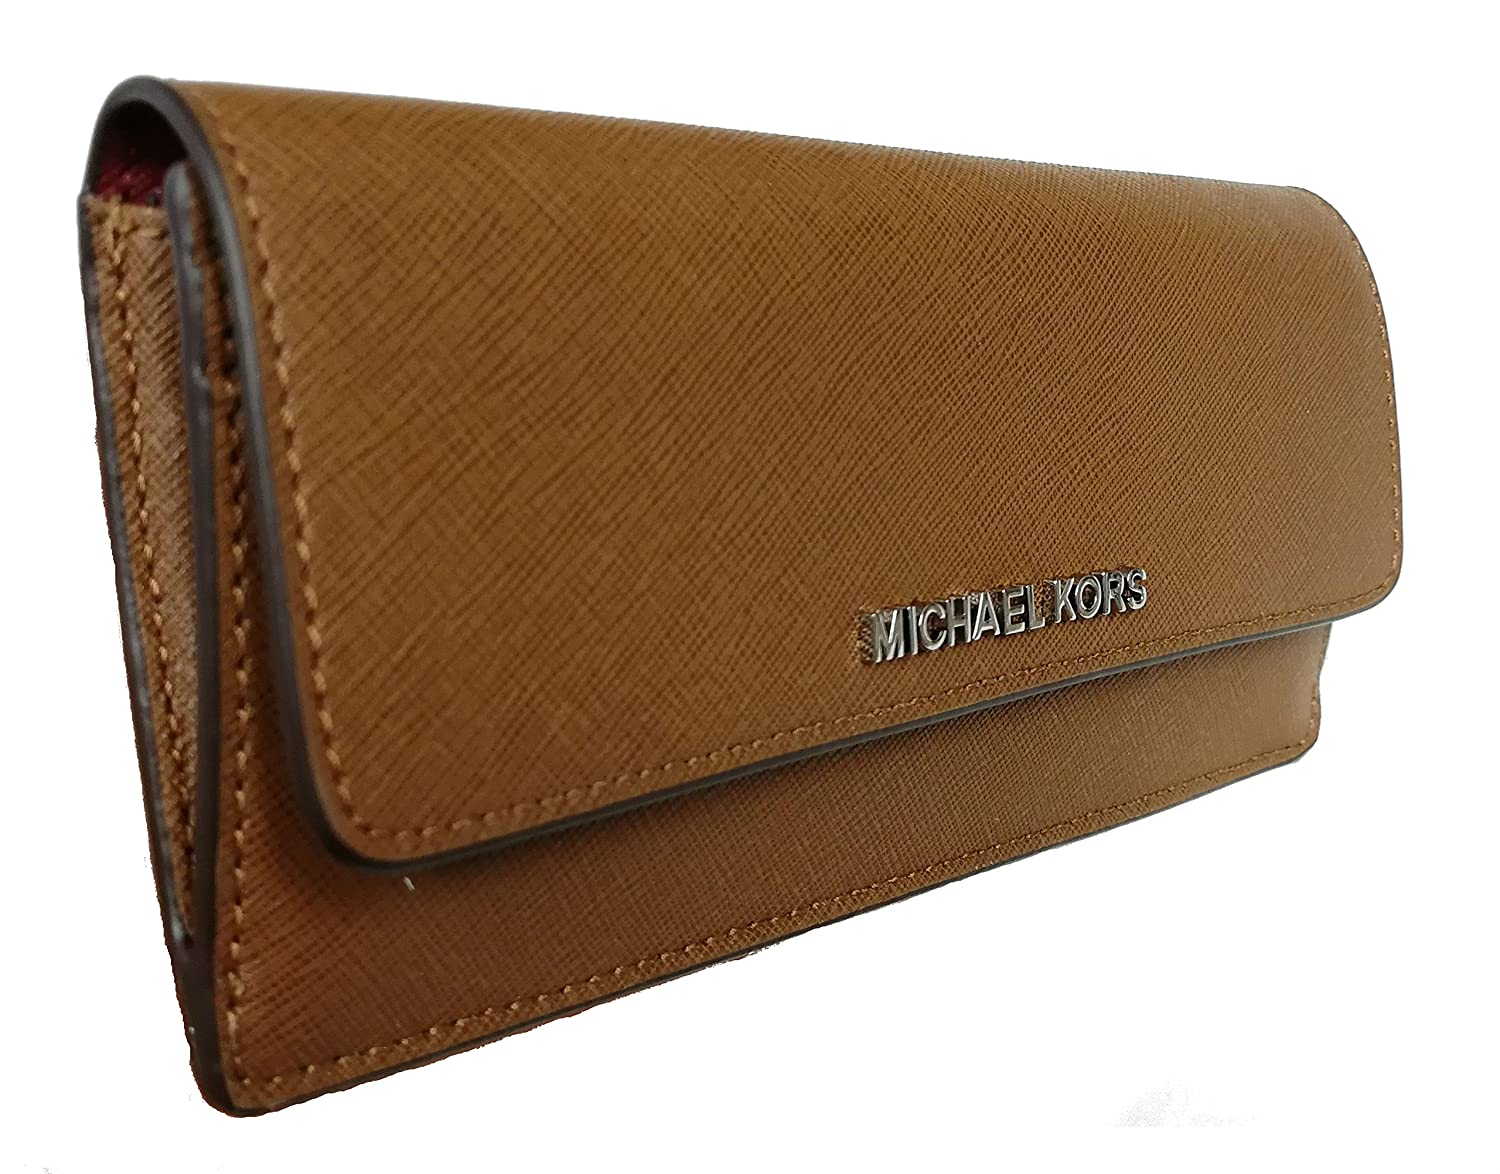 a51a1546142971 Michael Kors Jet Set Travel Flat Saffiano Leather Wallet Cinder/Ecru at  Amazon Men's Clothing store: